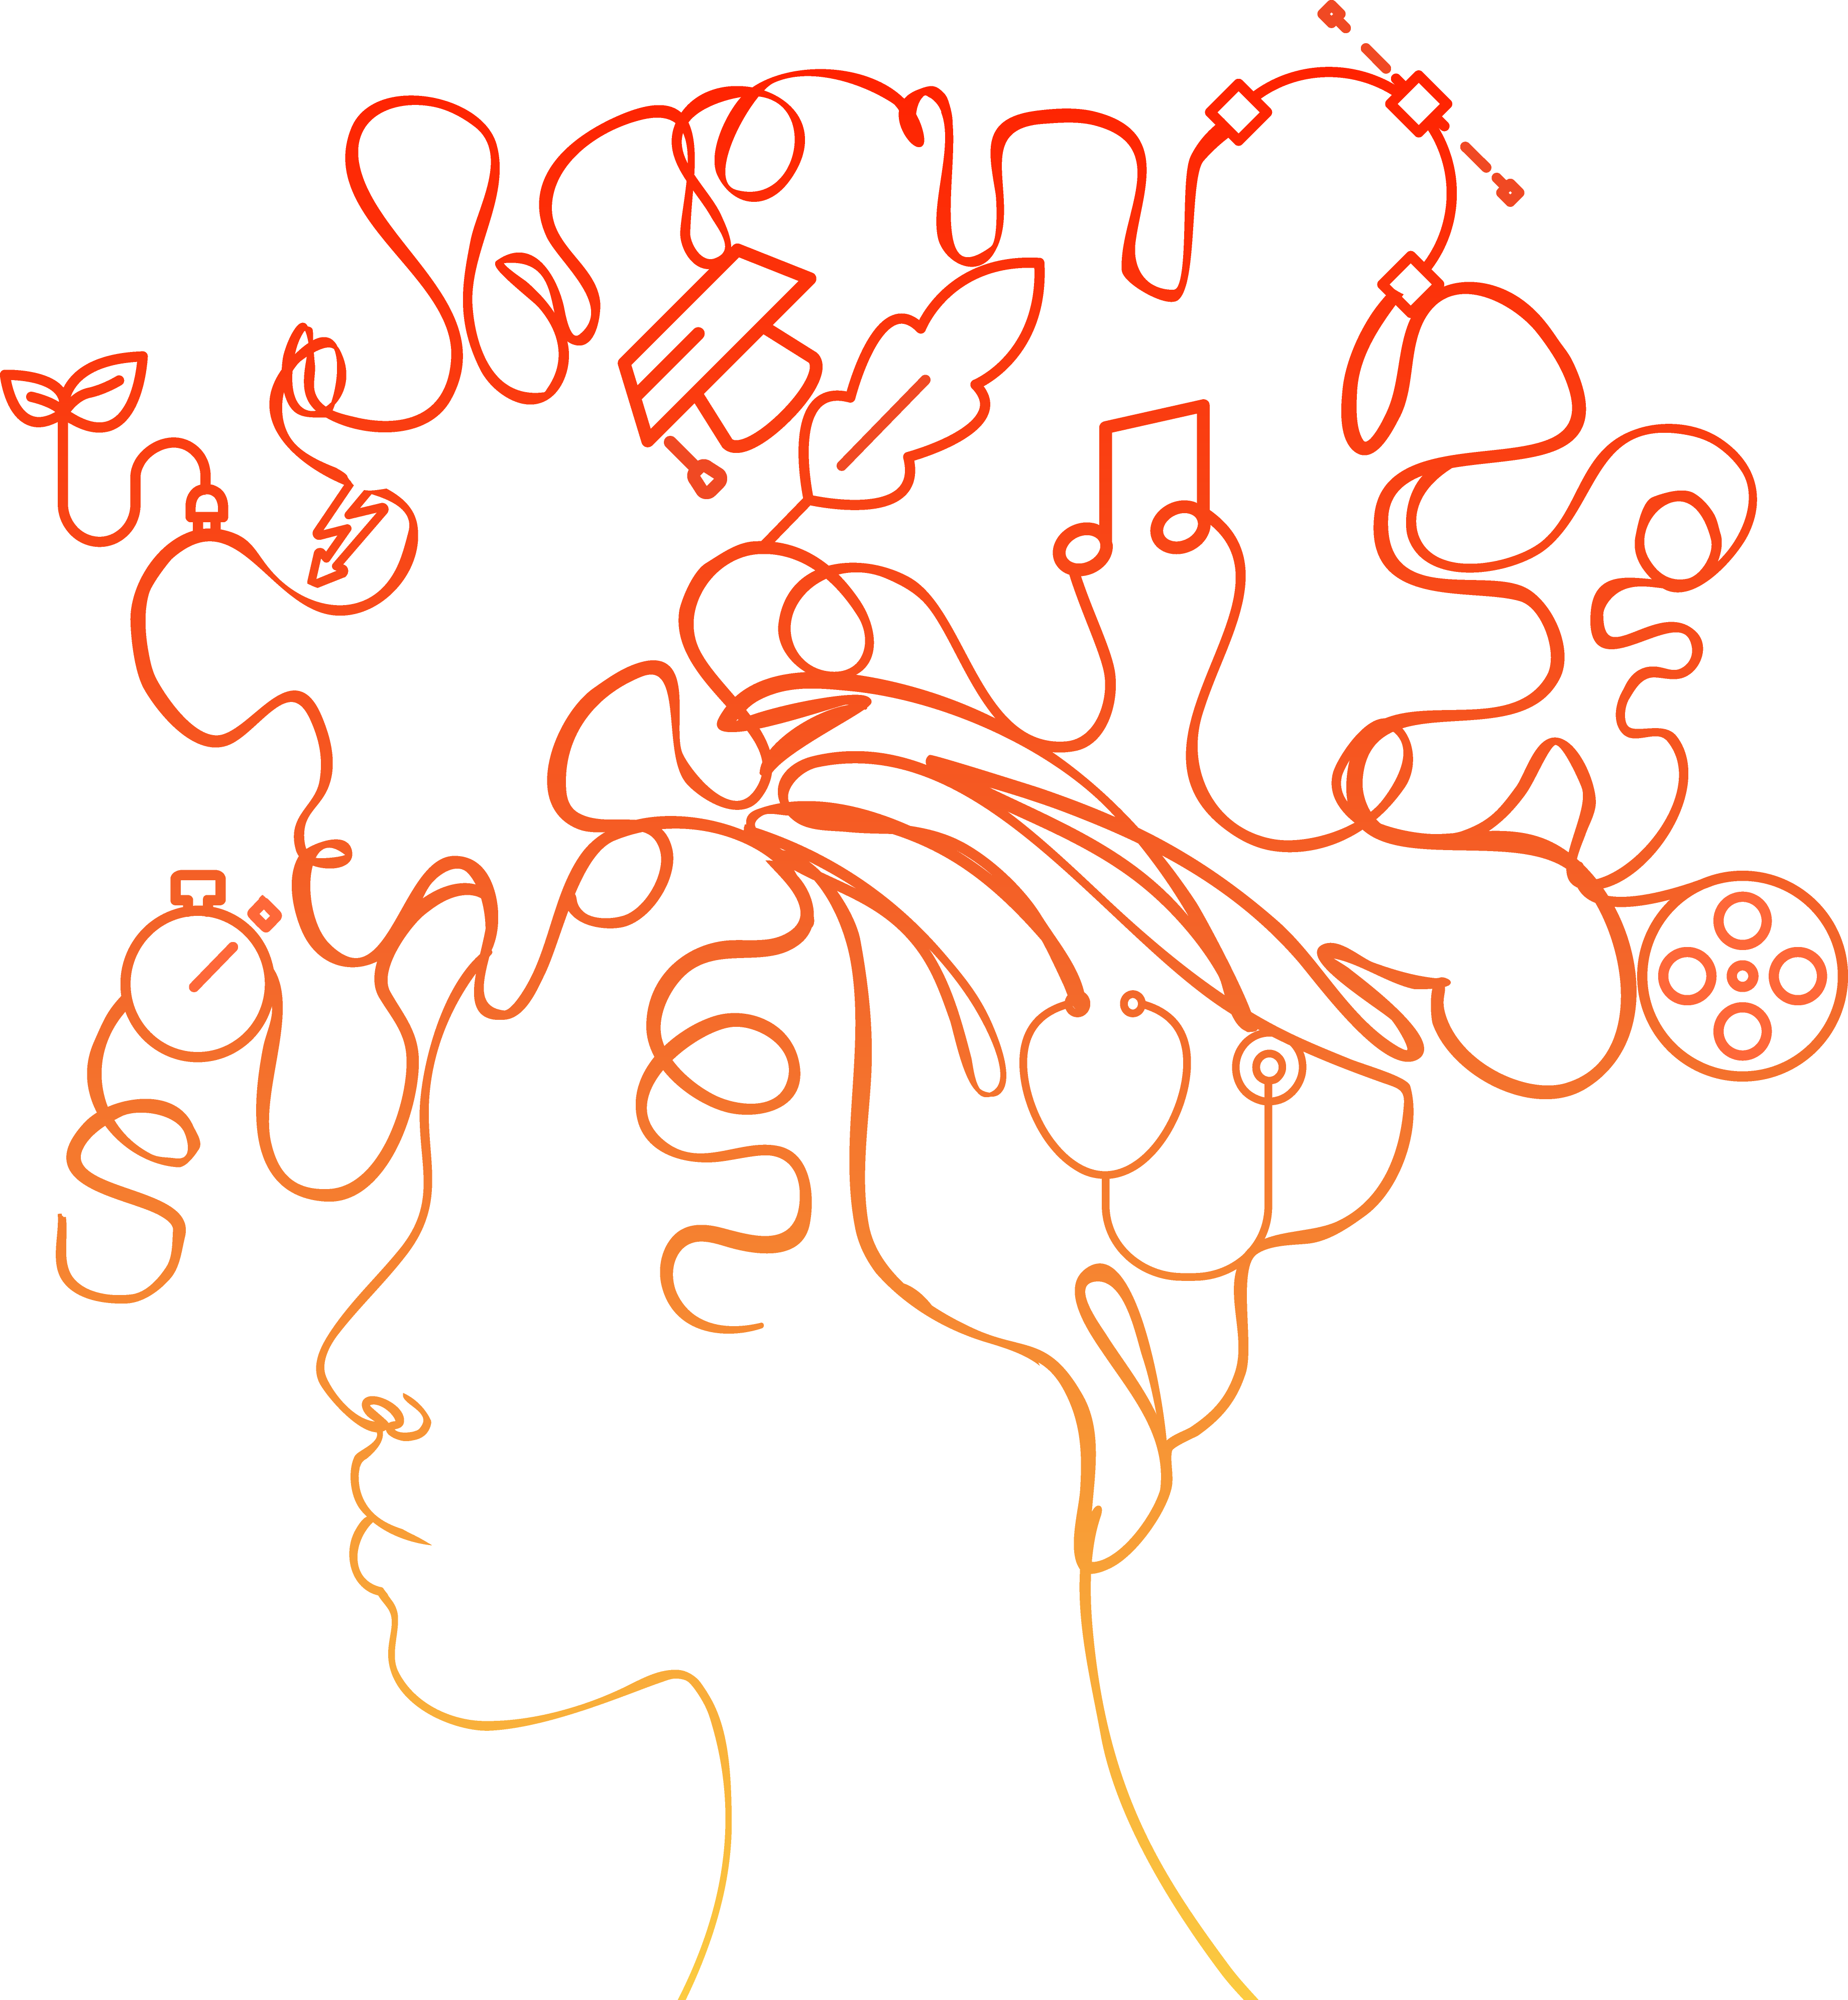 illustration of hair forming different interests